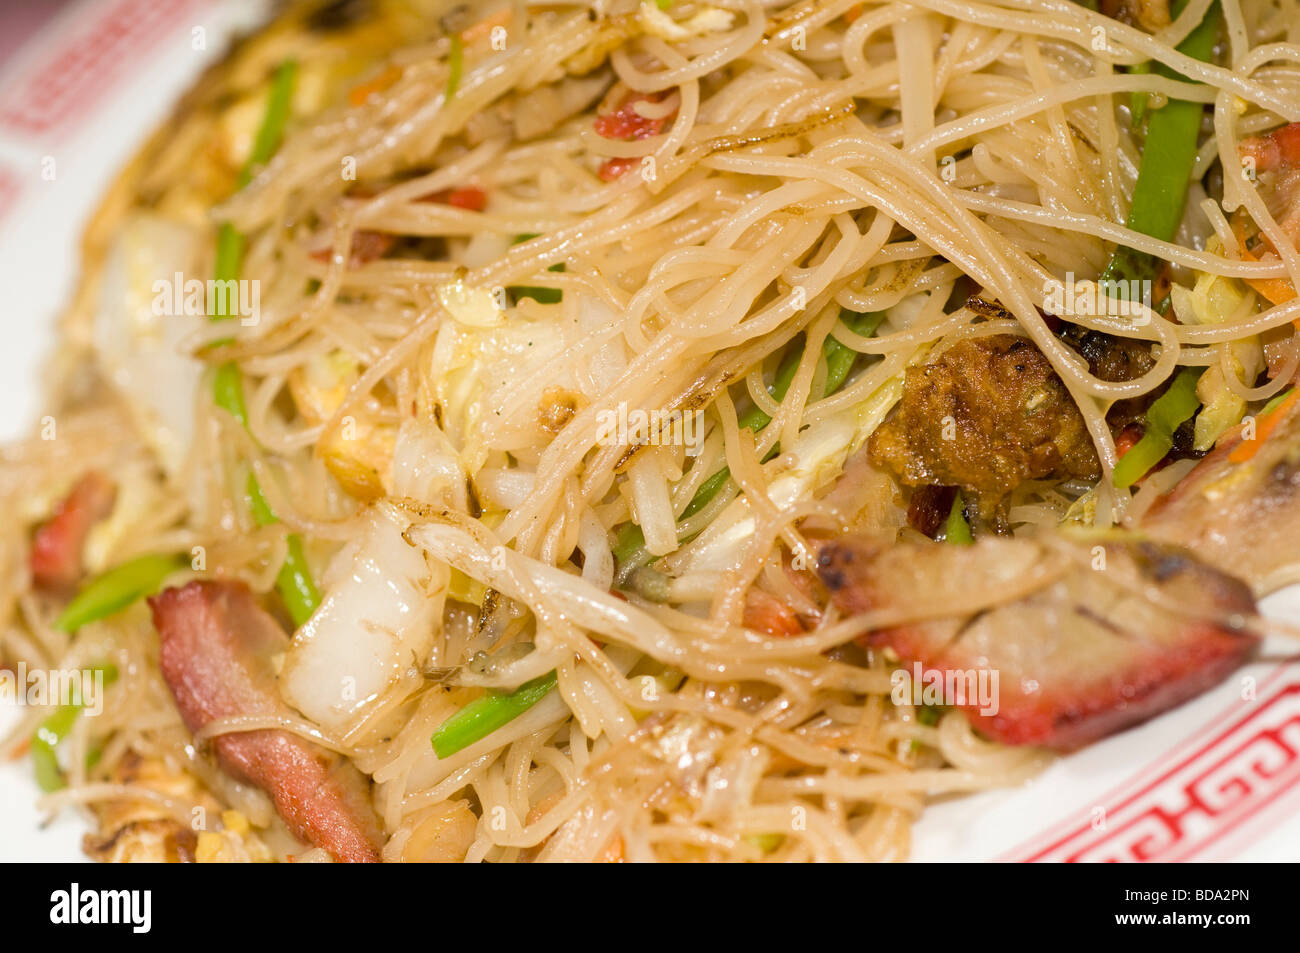 Stock Photo Thin Flat Rice Noodles With Roast Pork Slices And Vegetables At Chinese Restaurant